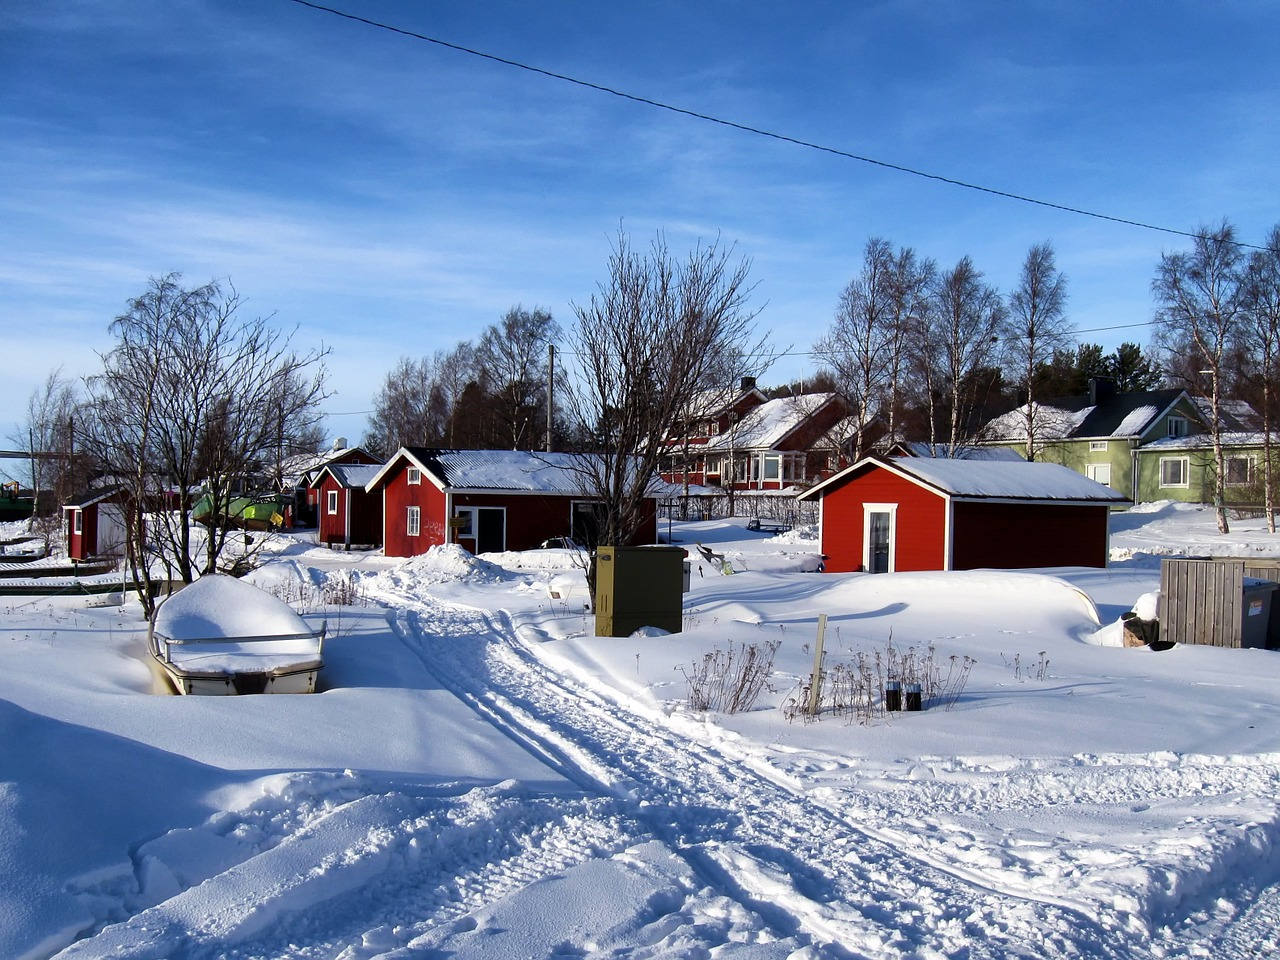 kello finland fishing village free photo